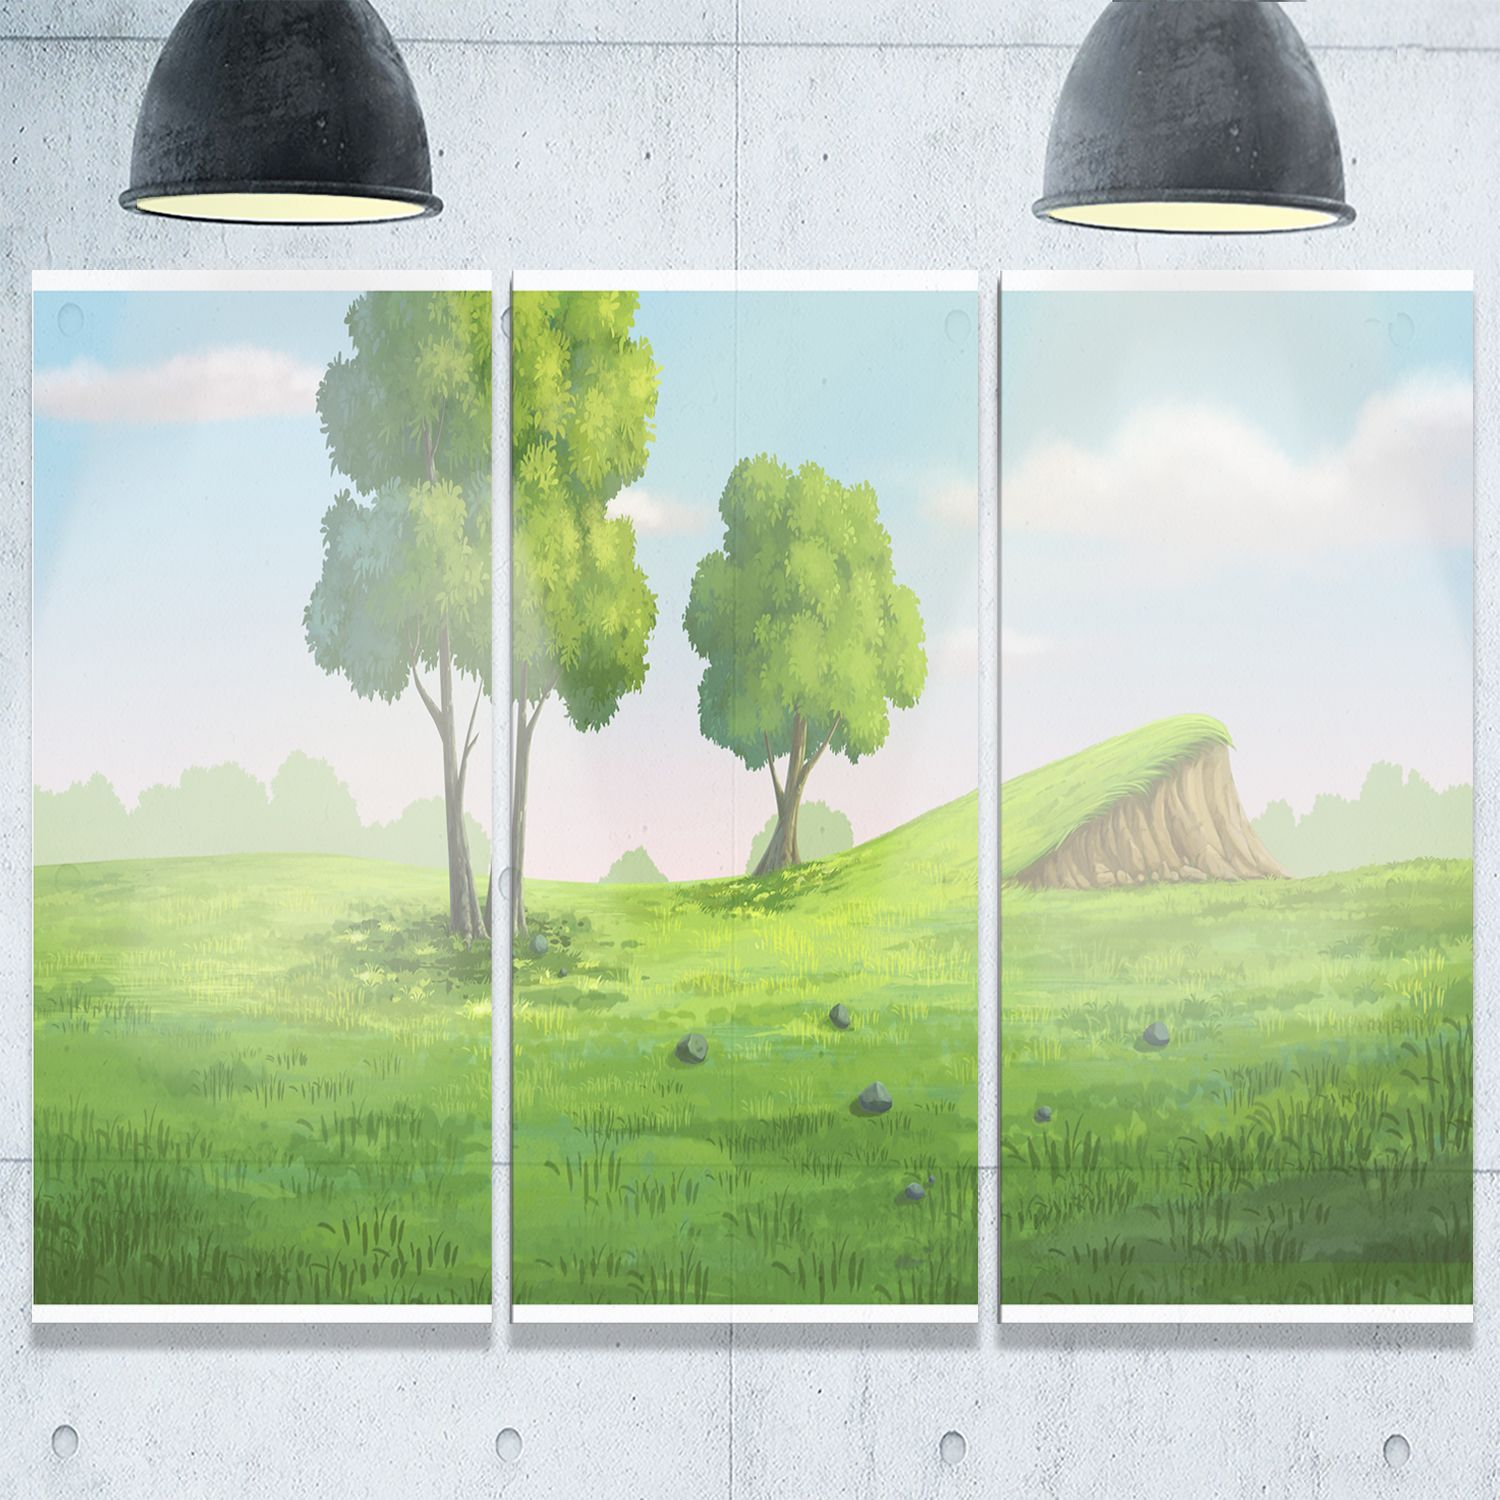 Designart - Garden with Mound and Trees - Oversized Landscape Glossy Metal Wall Art